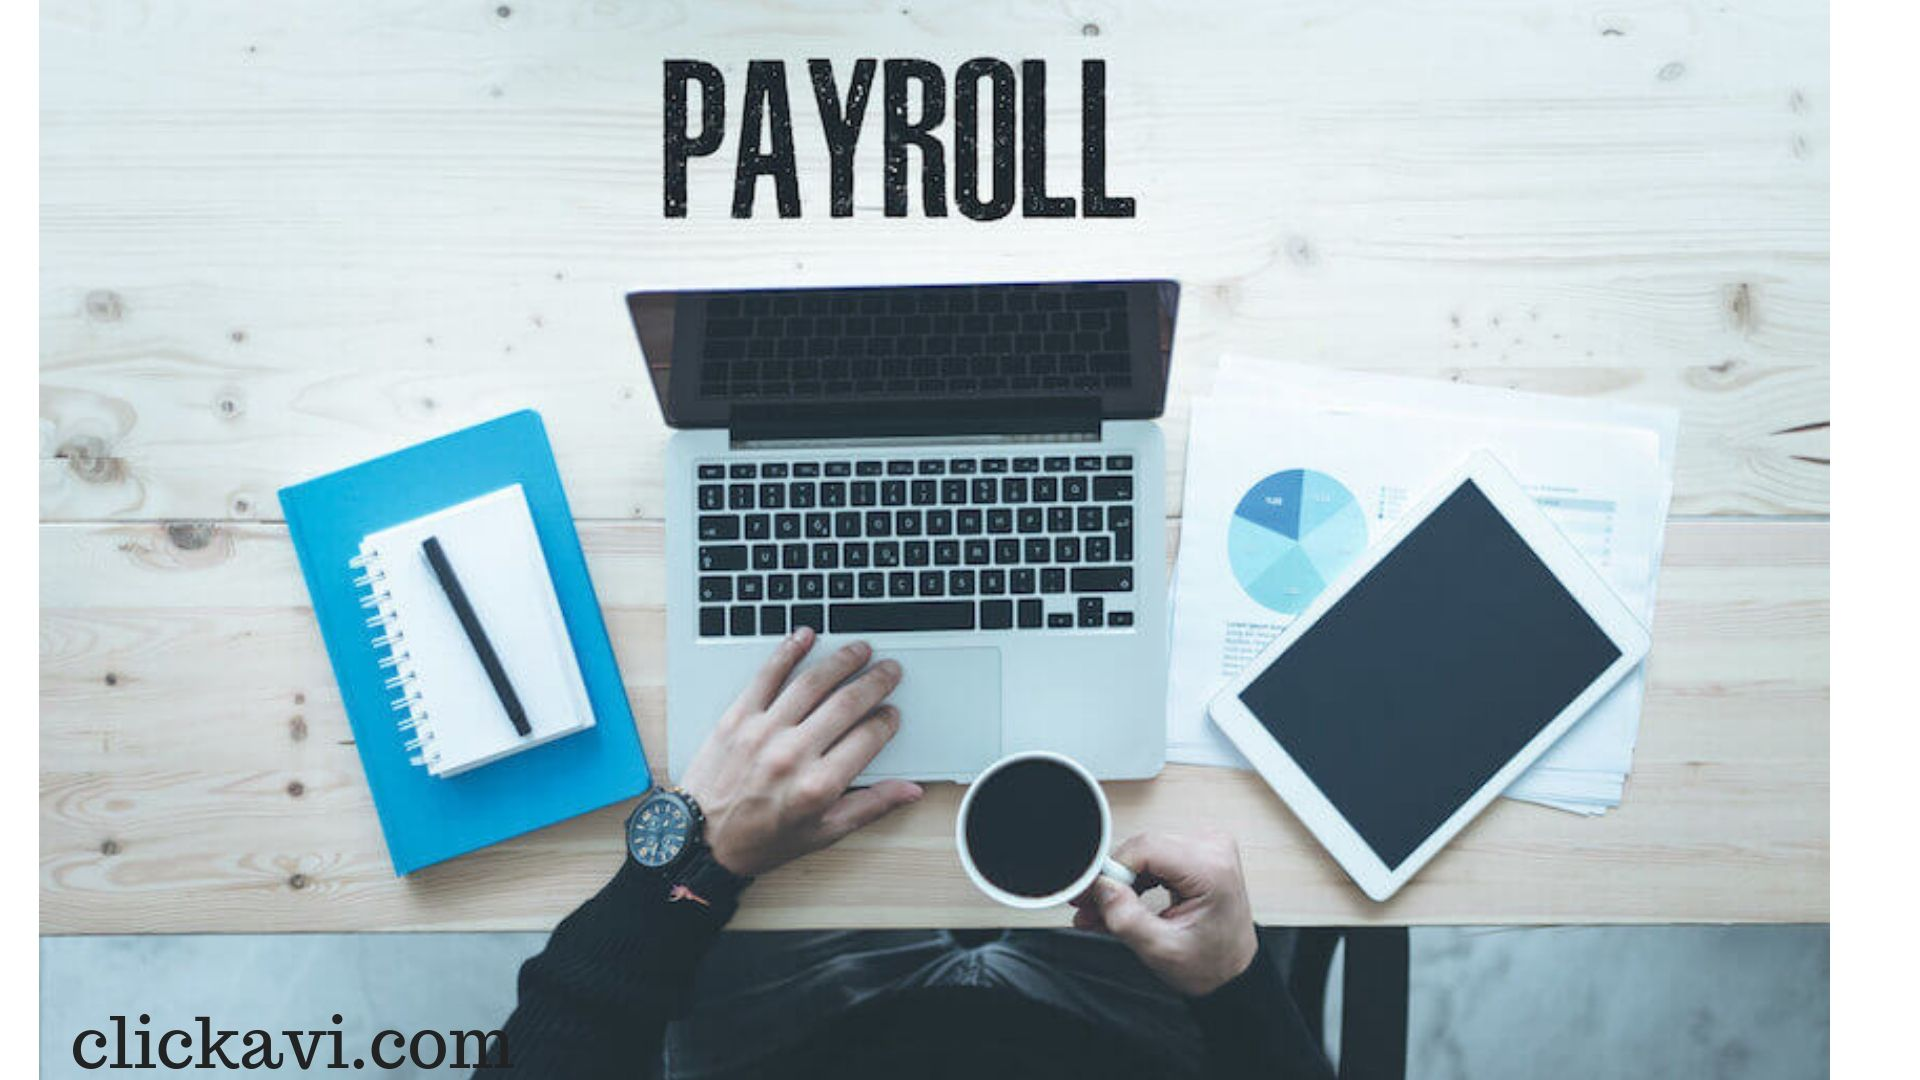 Payroll automation refers to the use of computers to